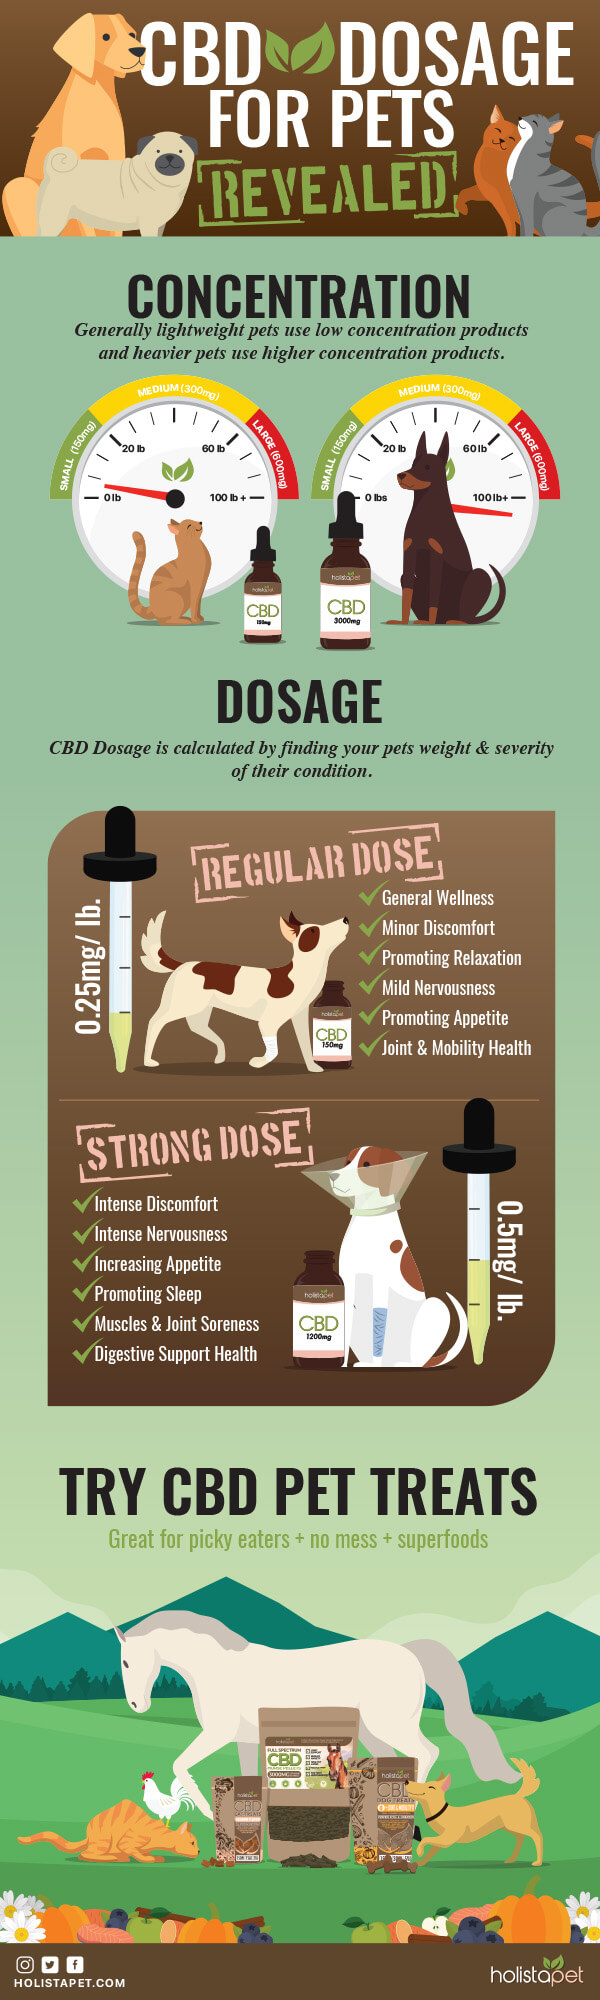 How-much-CBD-oil-should-I-give-my-dog-infographic-plaza